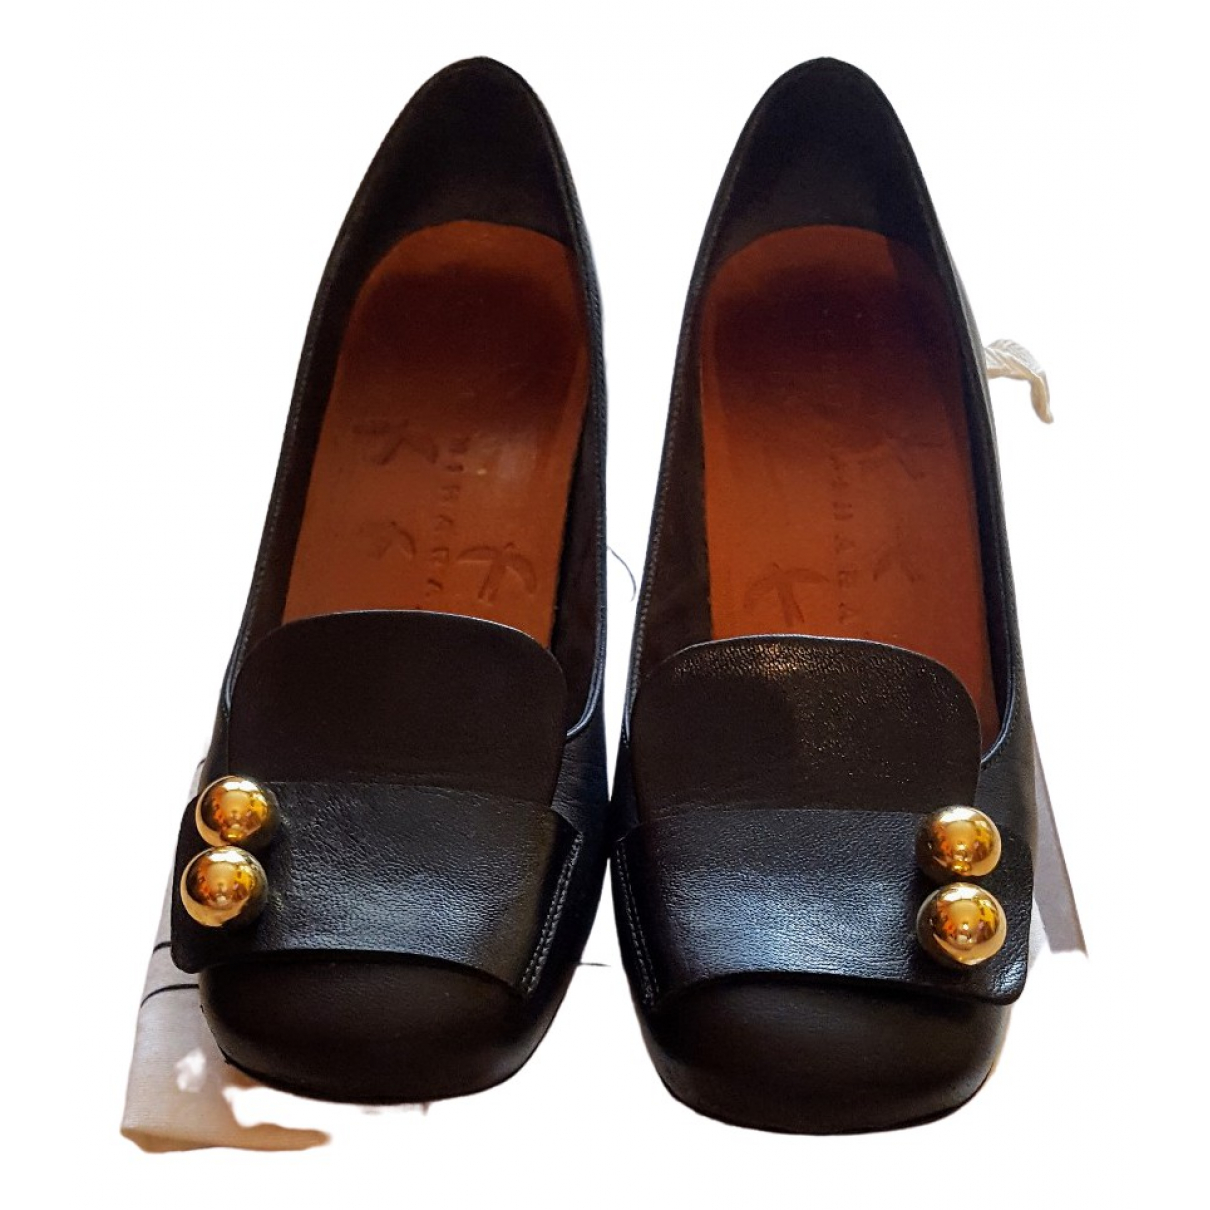 Chie Mihara \N Black Leather Flats for Women 38 EU